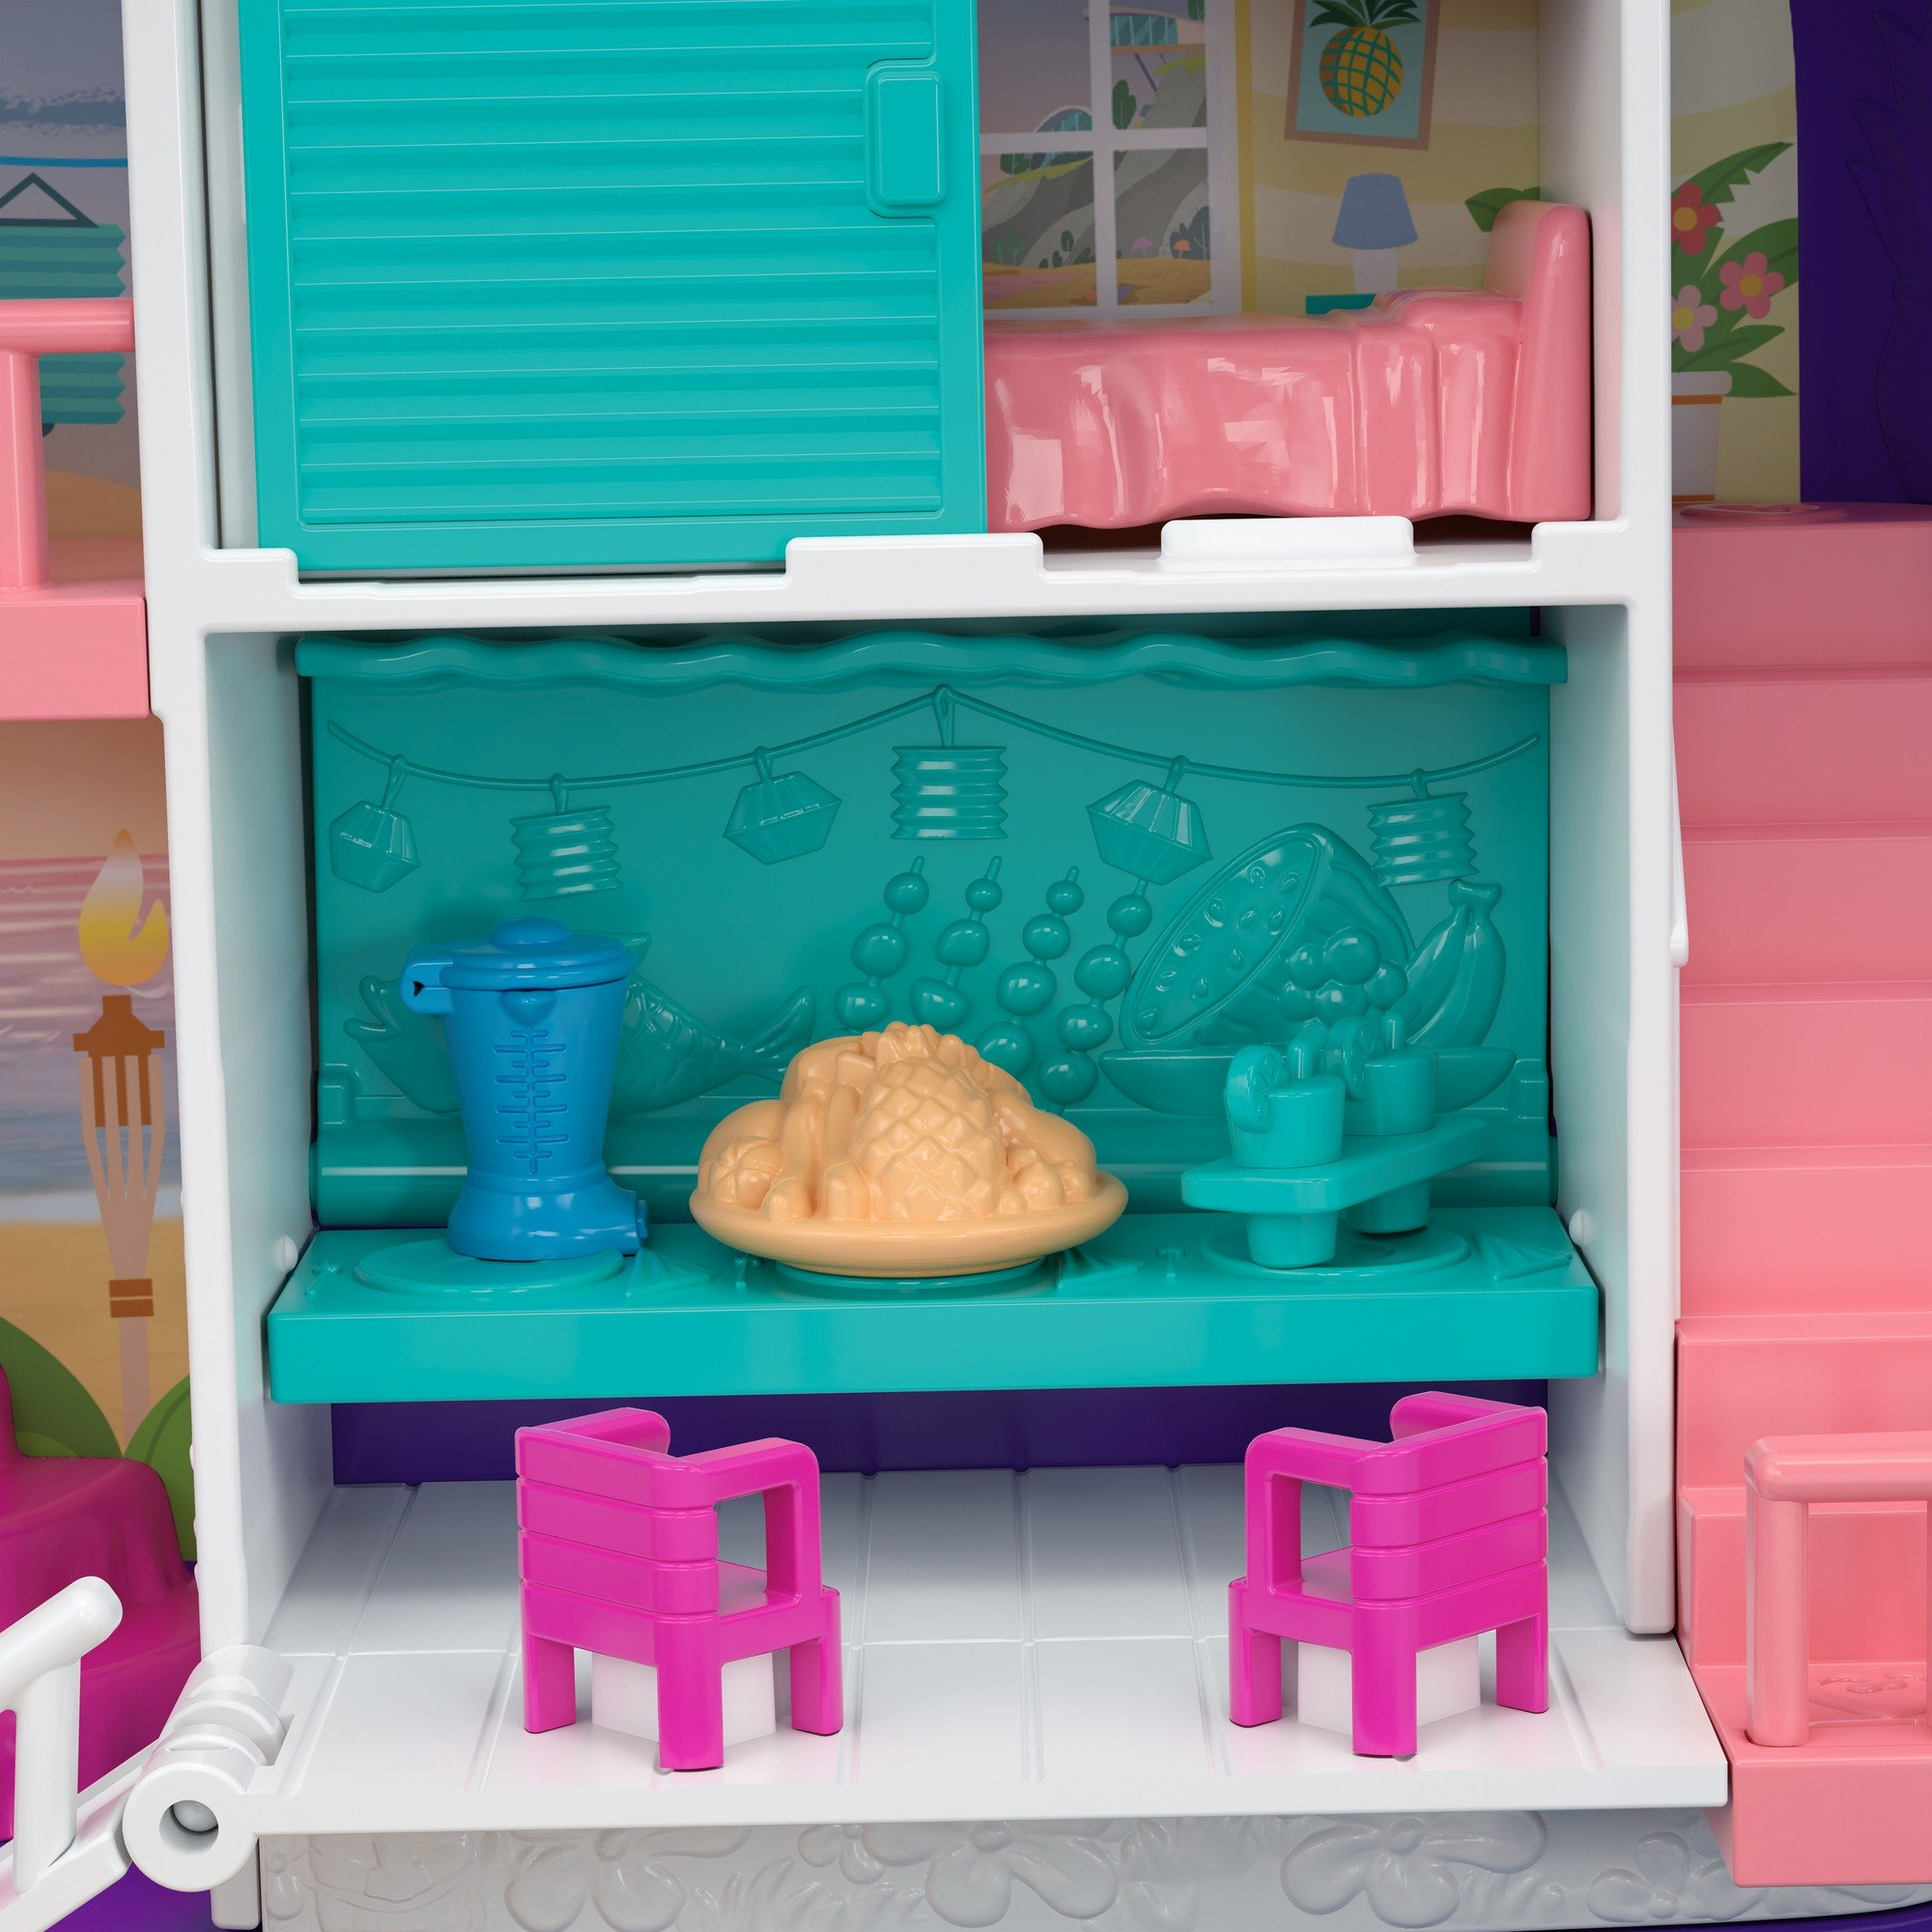 Polly Pocket Beach Vibes Figure, Multicolor by Polly Pocket (Image #6)